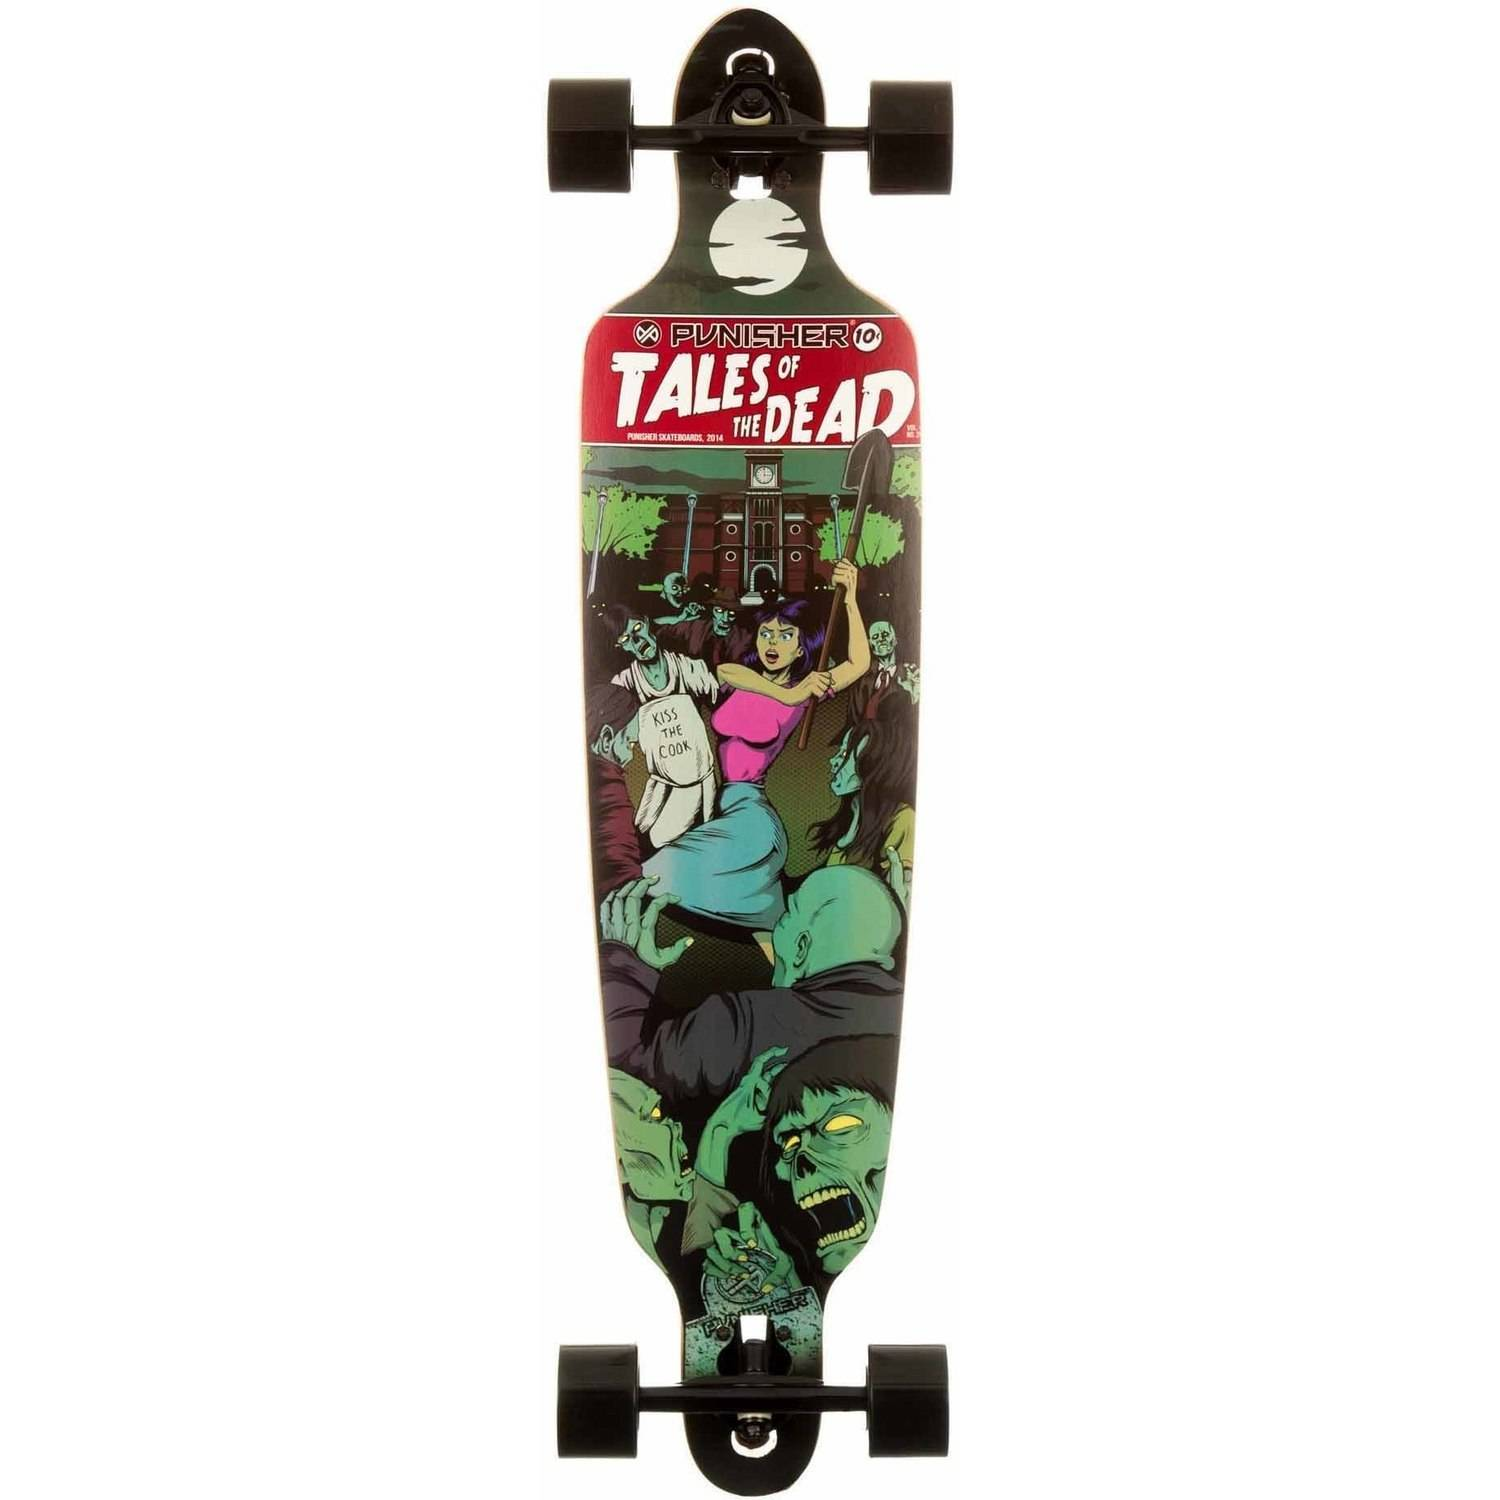 """Punisher Skateboards Tales of the Dead 40"""" Longboard, Double Kick with Drop Down Deck by Generic"""